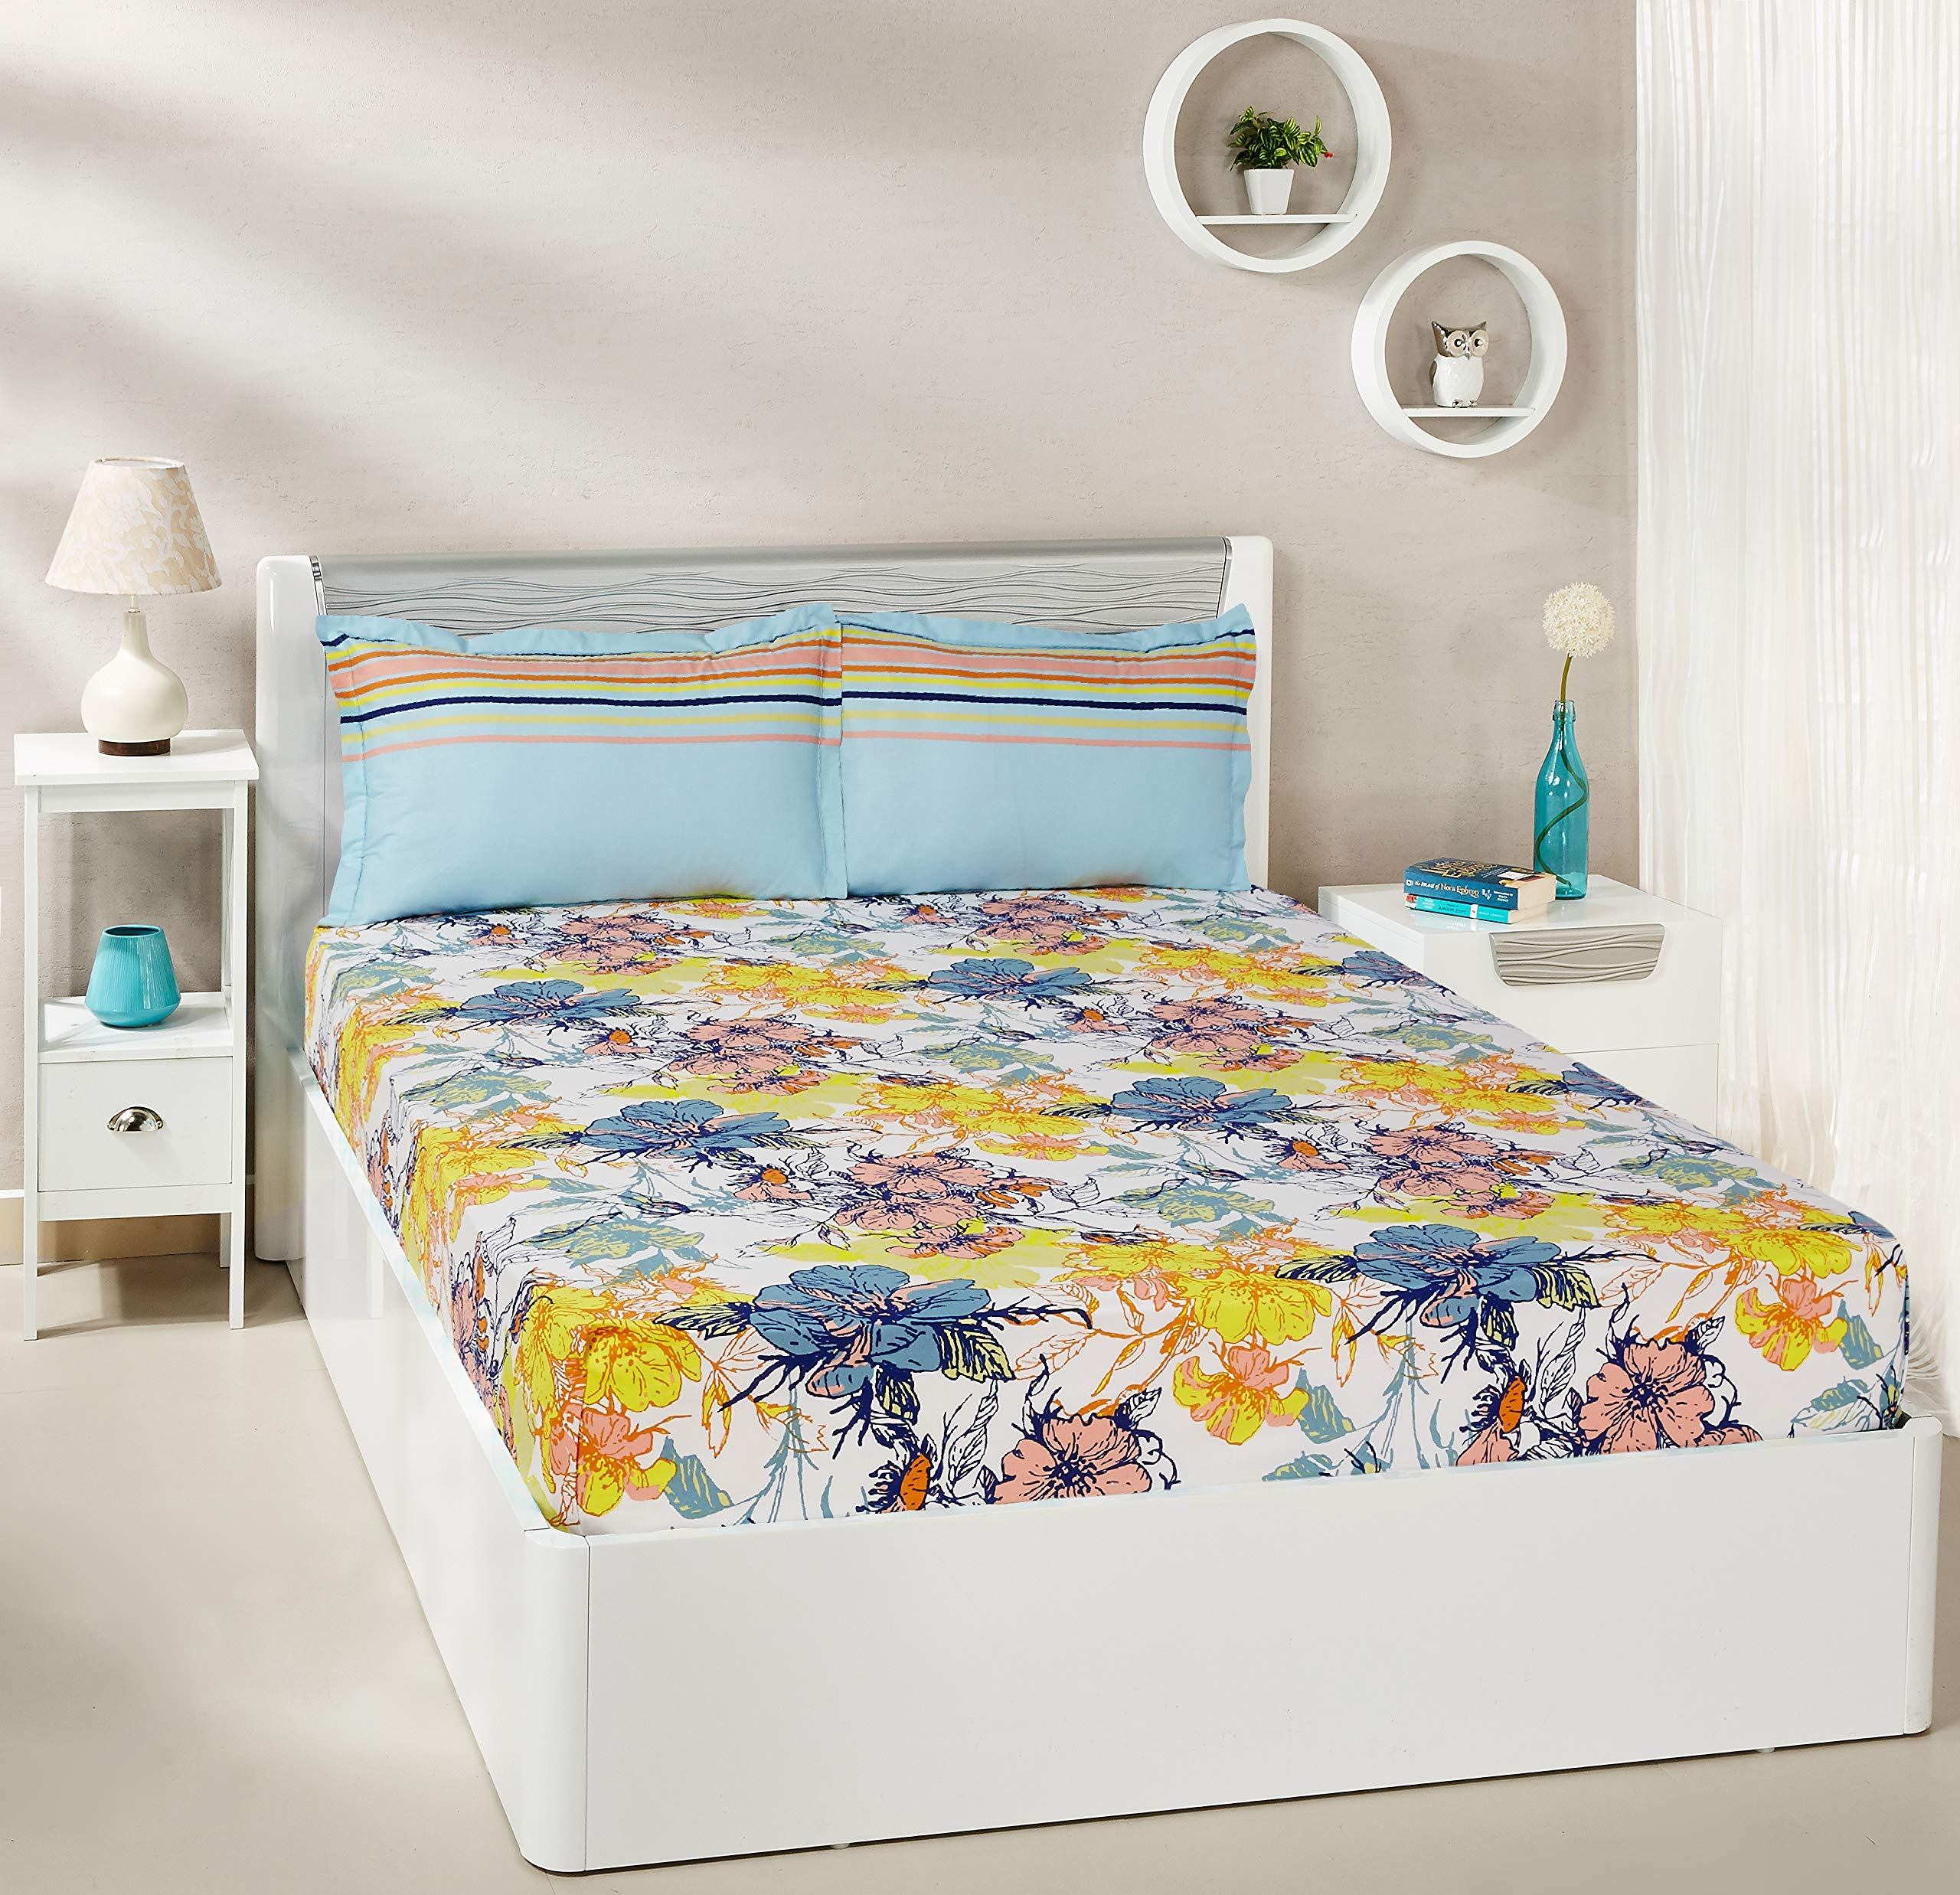 Amazon Brand - Solimo Floral Splash 144 TC 100% Cotton Double Bedsheet with 2 Pillow Covers, Peach product image